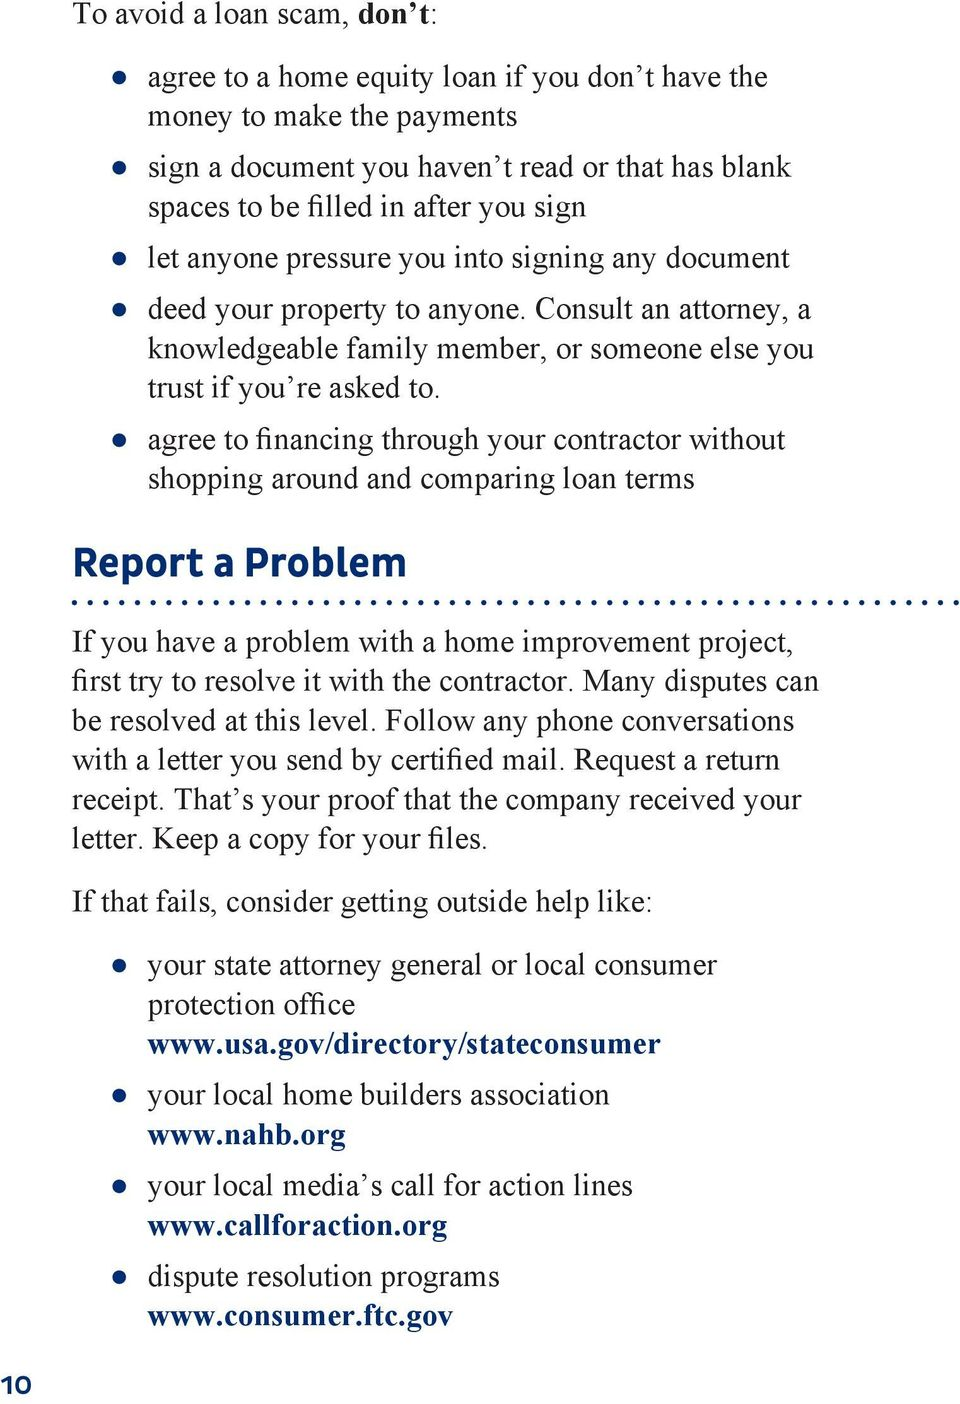 agree to financing through your contractor without shopping around and comparing loan terms Report a Problem If you have a problem with a home improvement project, first try to resolve it with the